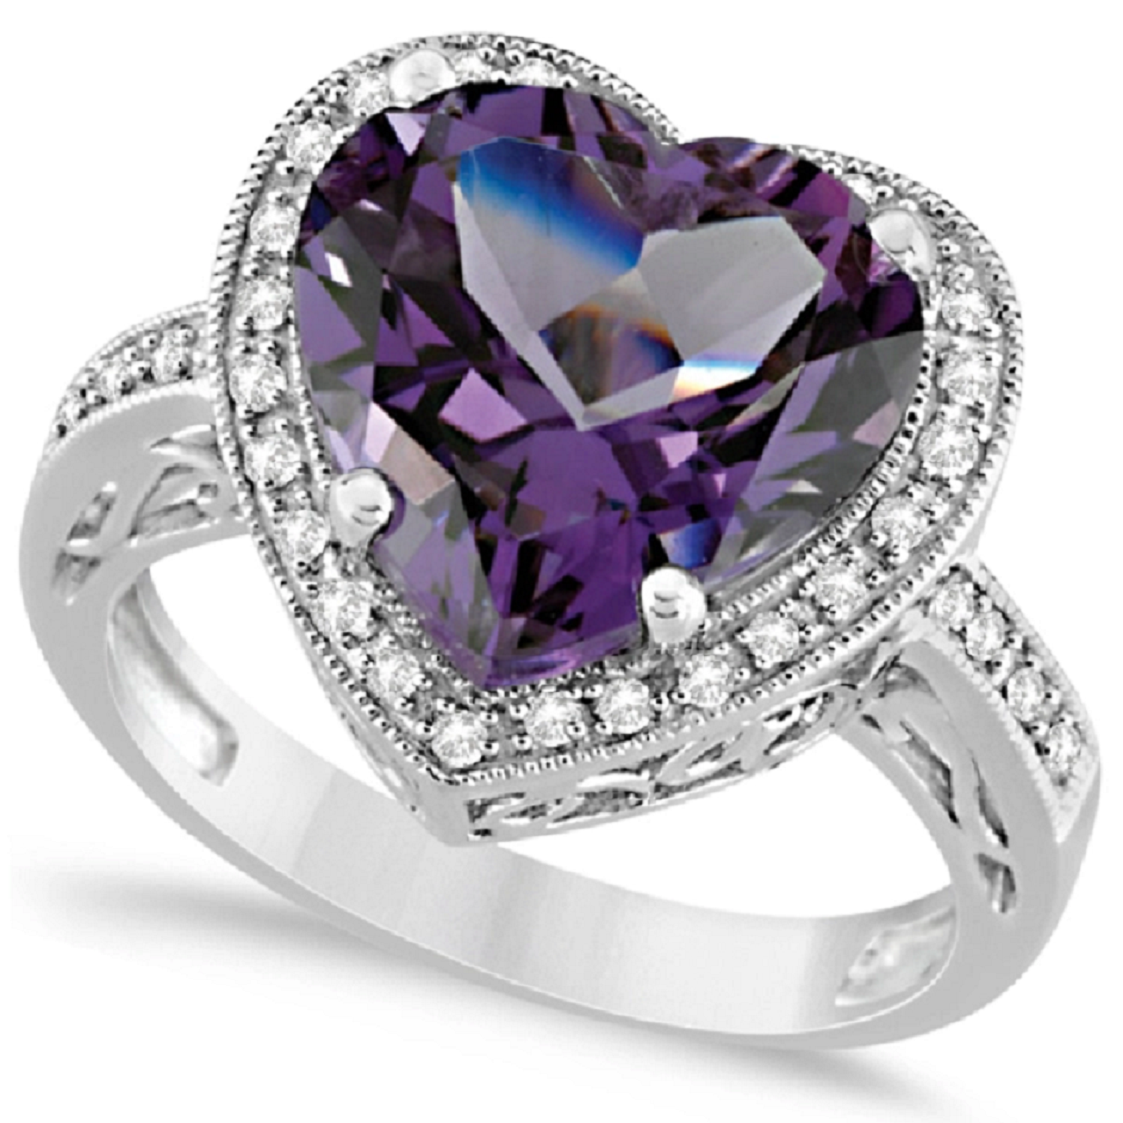 Best massive bling rings 2021 Glittering Heart Shaped Amethyst Diamond with Clear Diamond Halo Ring